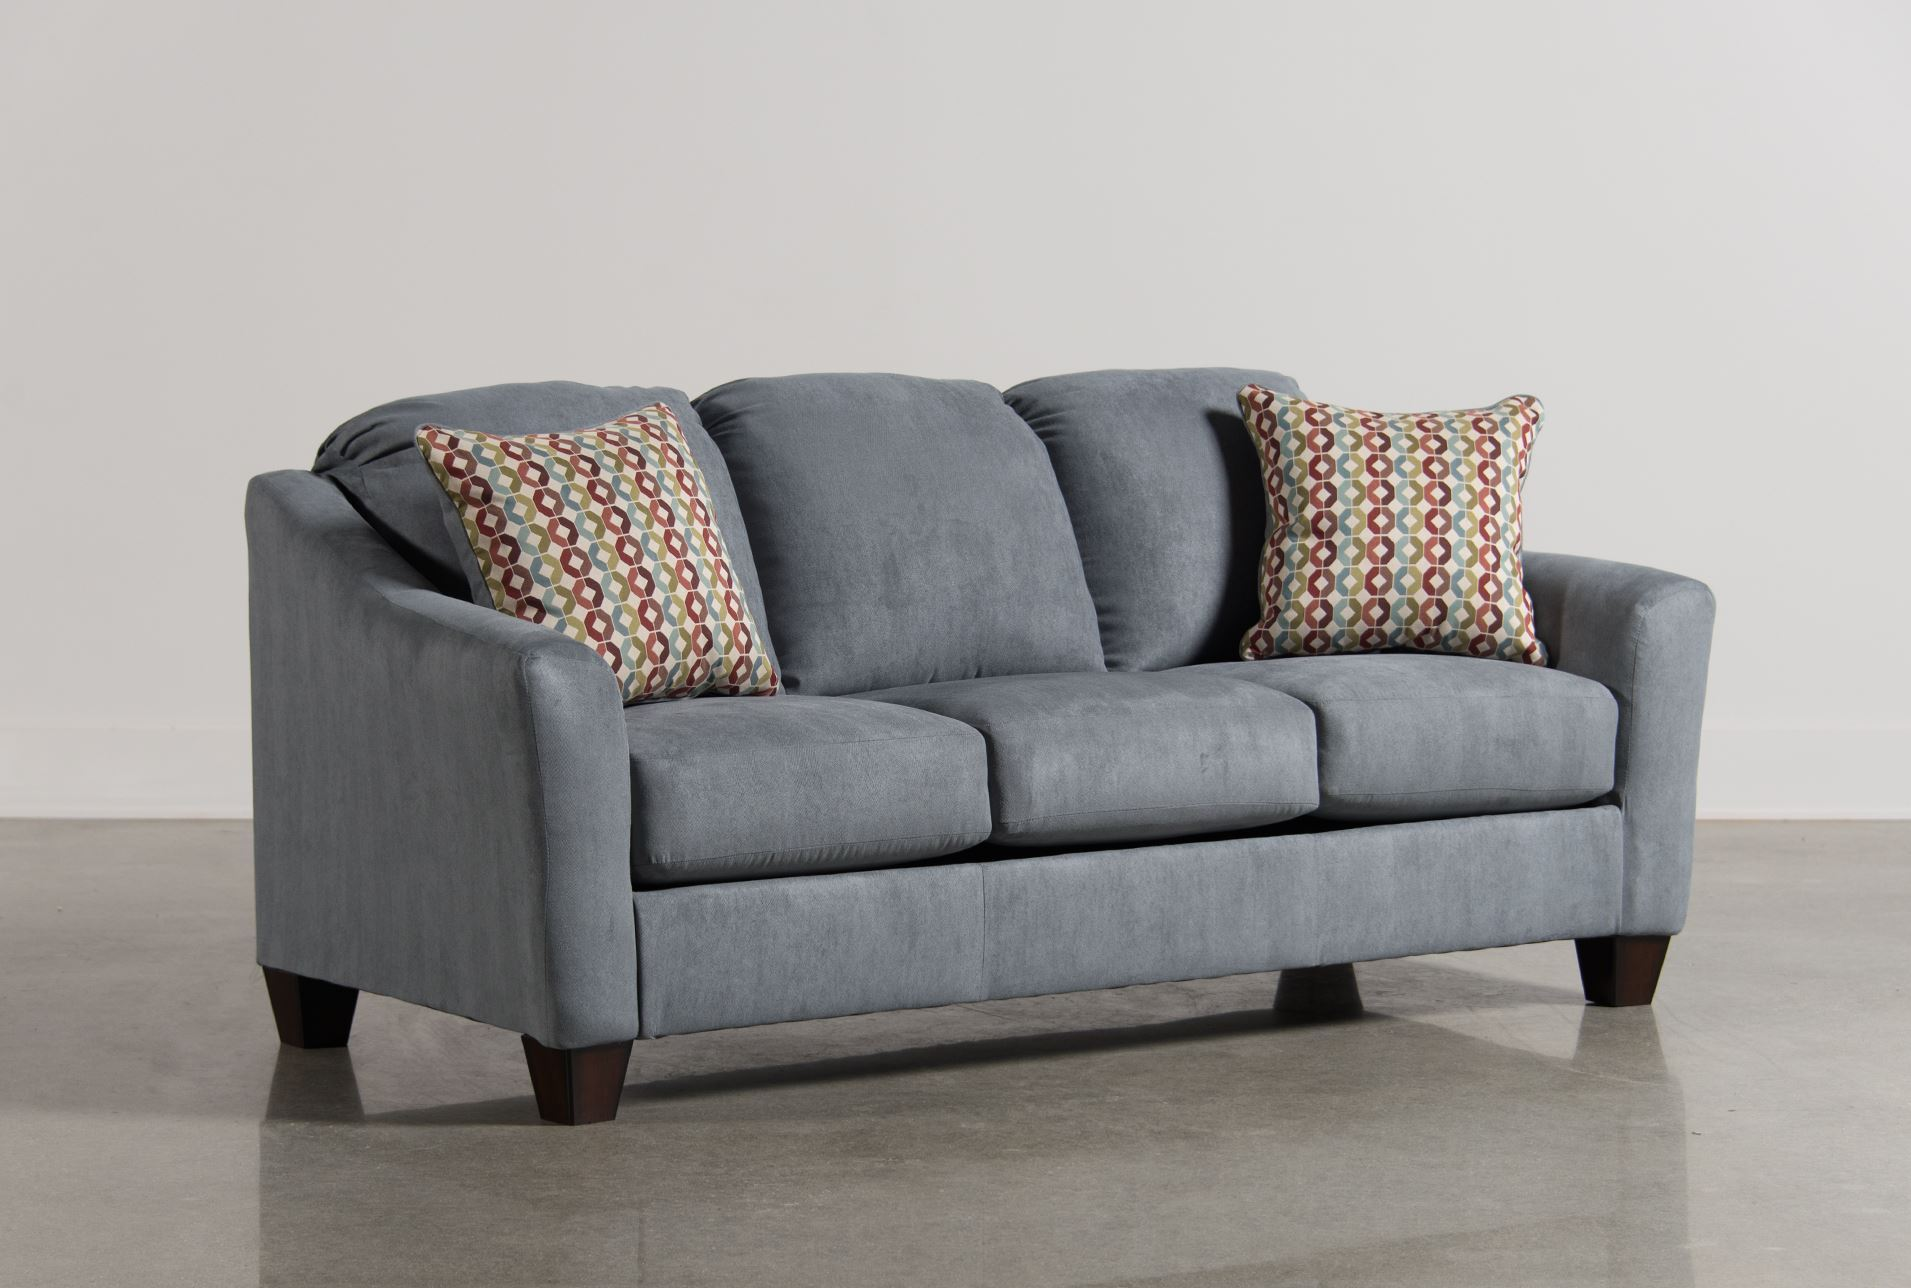 Hannin Lagoon Sofa Your Way Online Ping Earn Points On Tools Liances Electronics More